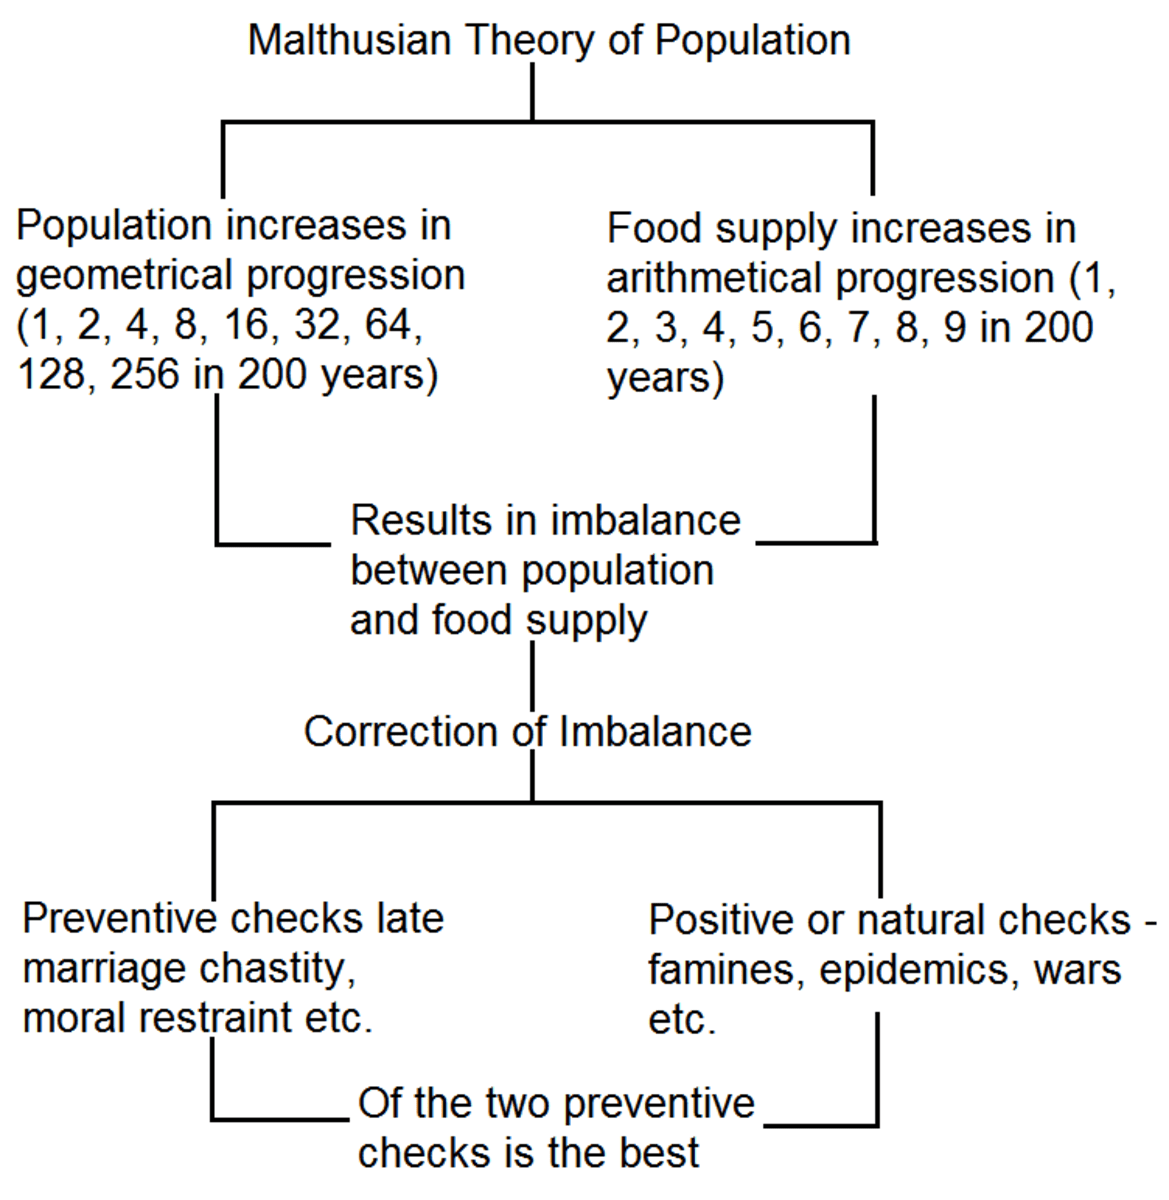 Malthusian Theory of Population  HubPages